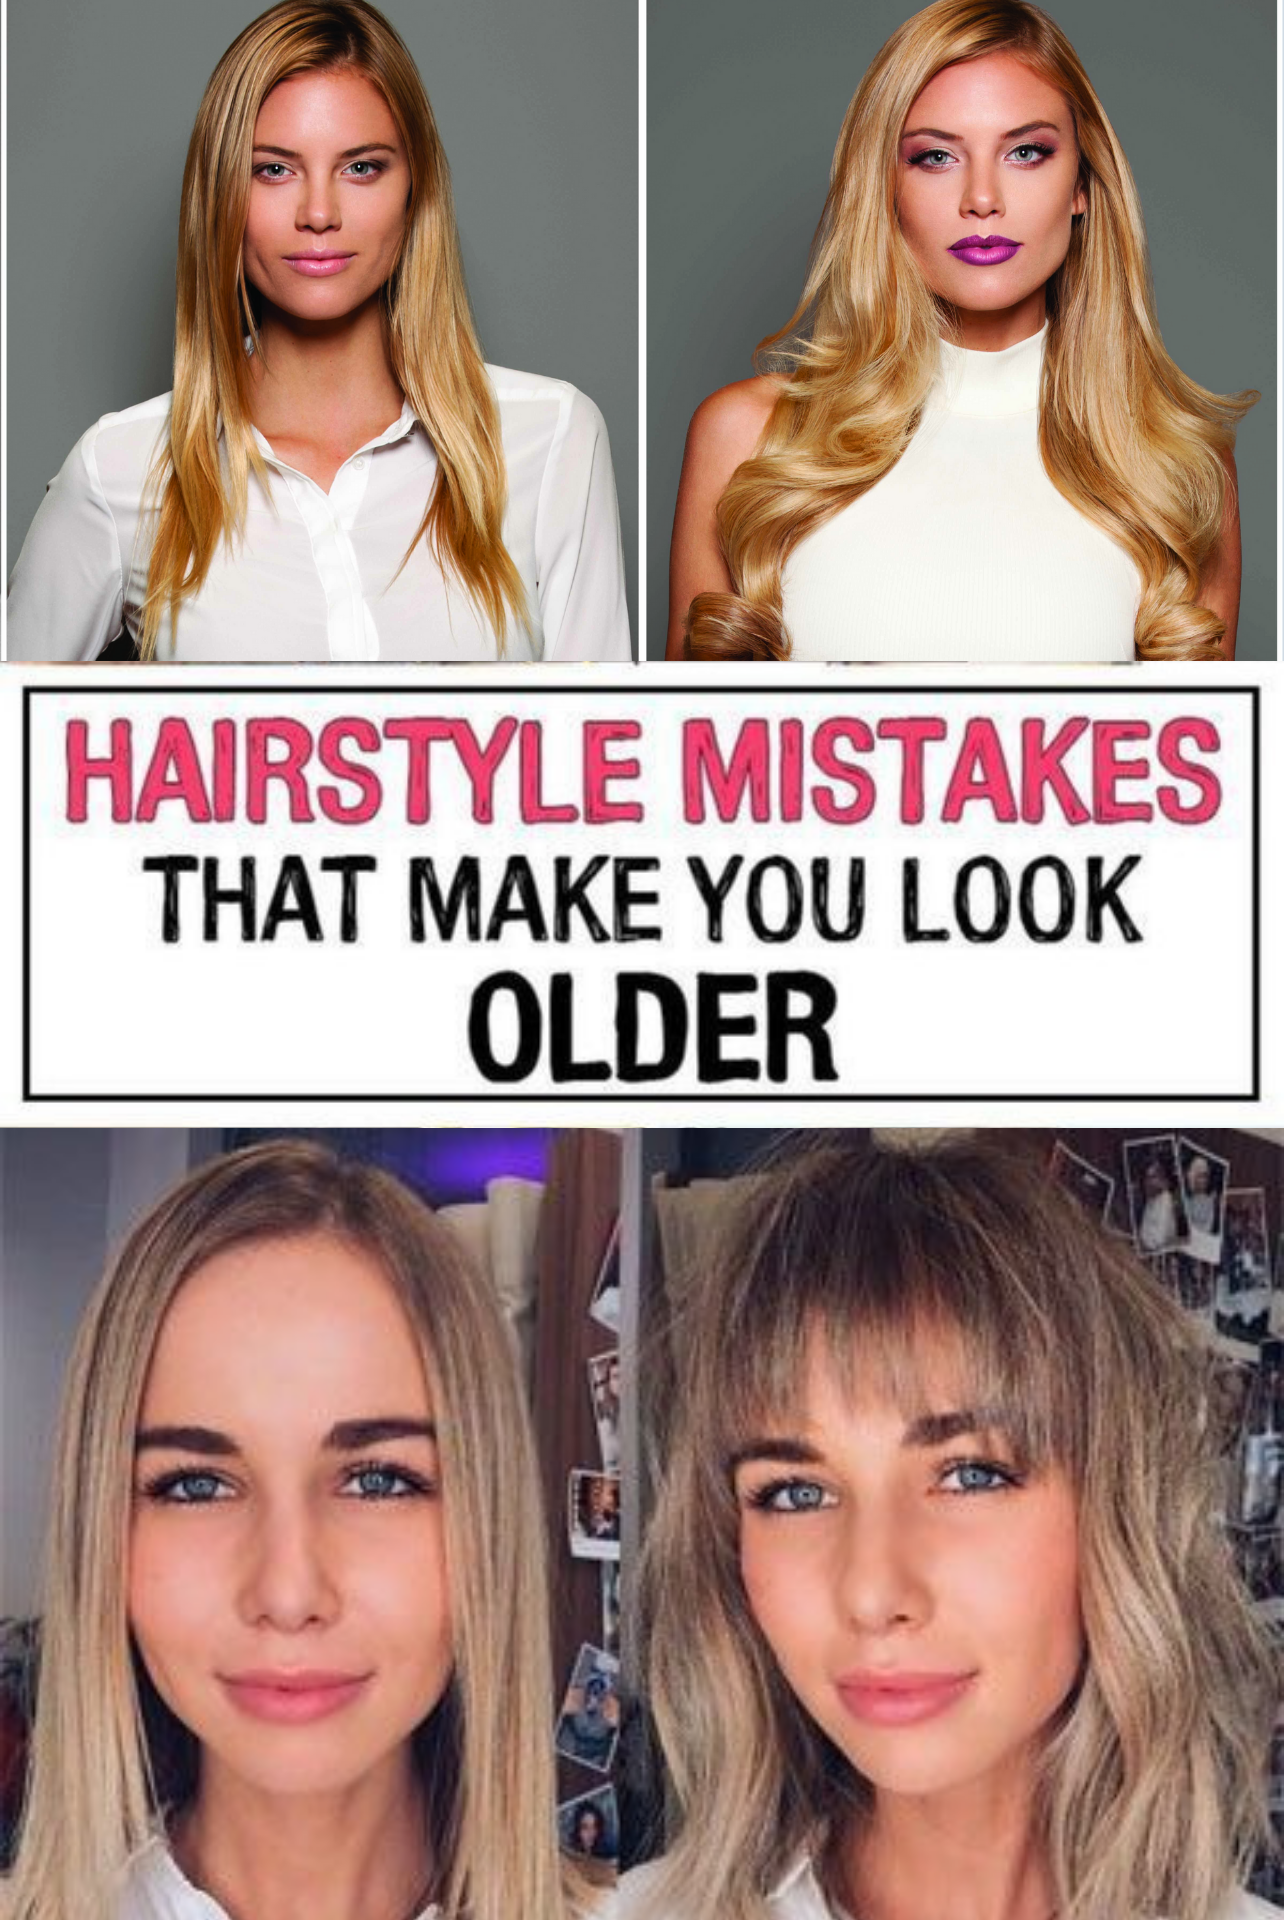 37 Hairstyle Mistakes That Are Aging You In 2020 Hair Advice Hairstyle Hair Mistakes